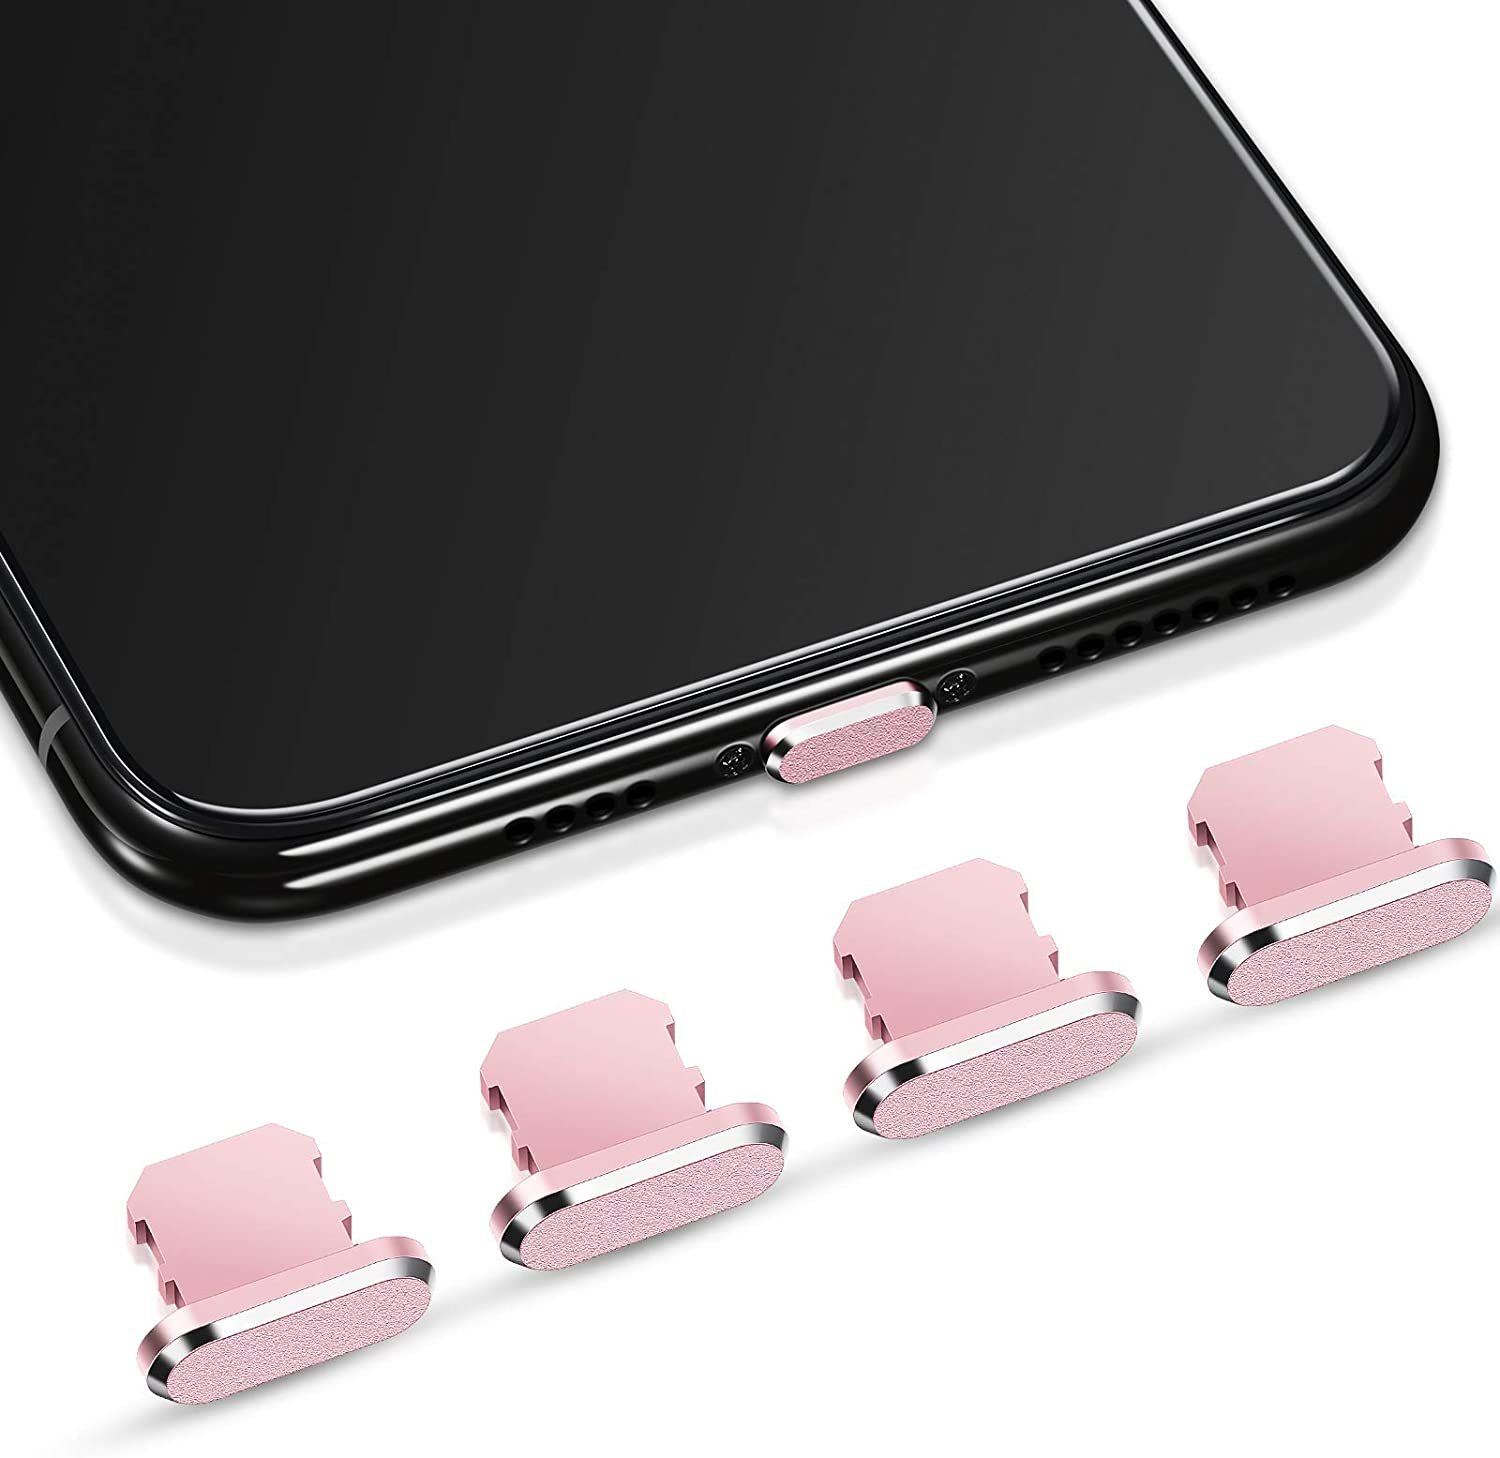 Weewooday 4 Pieces Anti Dust Plugs Compatible with iPhone 11, iPhone 12 Protects Charging Dust Cover Compatible with iPhone 11, 12, Pro, Max/X/XS/XR, 7, 8 Plus, iPad Mini/Air (Rose Gold)